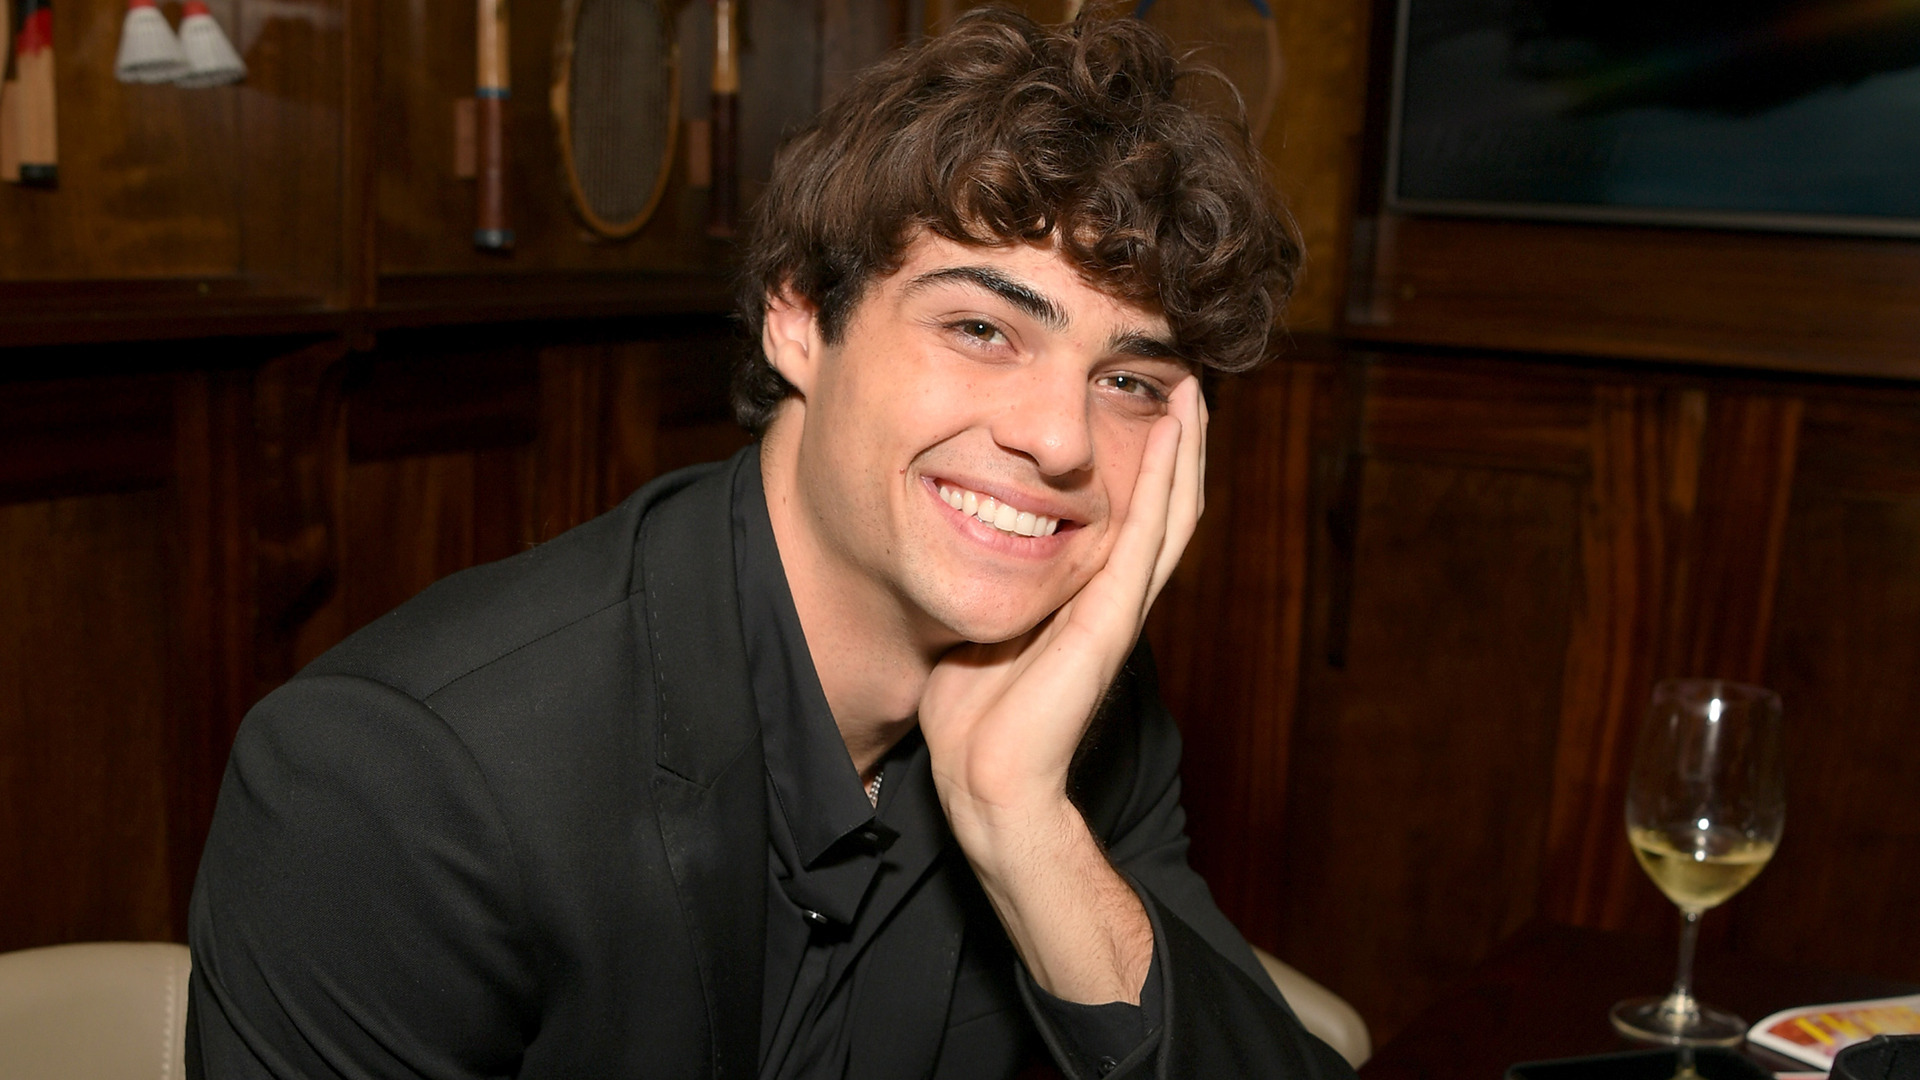 Noah Centineo Phone Number, Email, Fan Mail, Address, Biography, Agent, Manager, Mailing address, Contact Info, Mailing Addresses